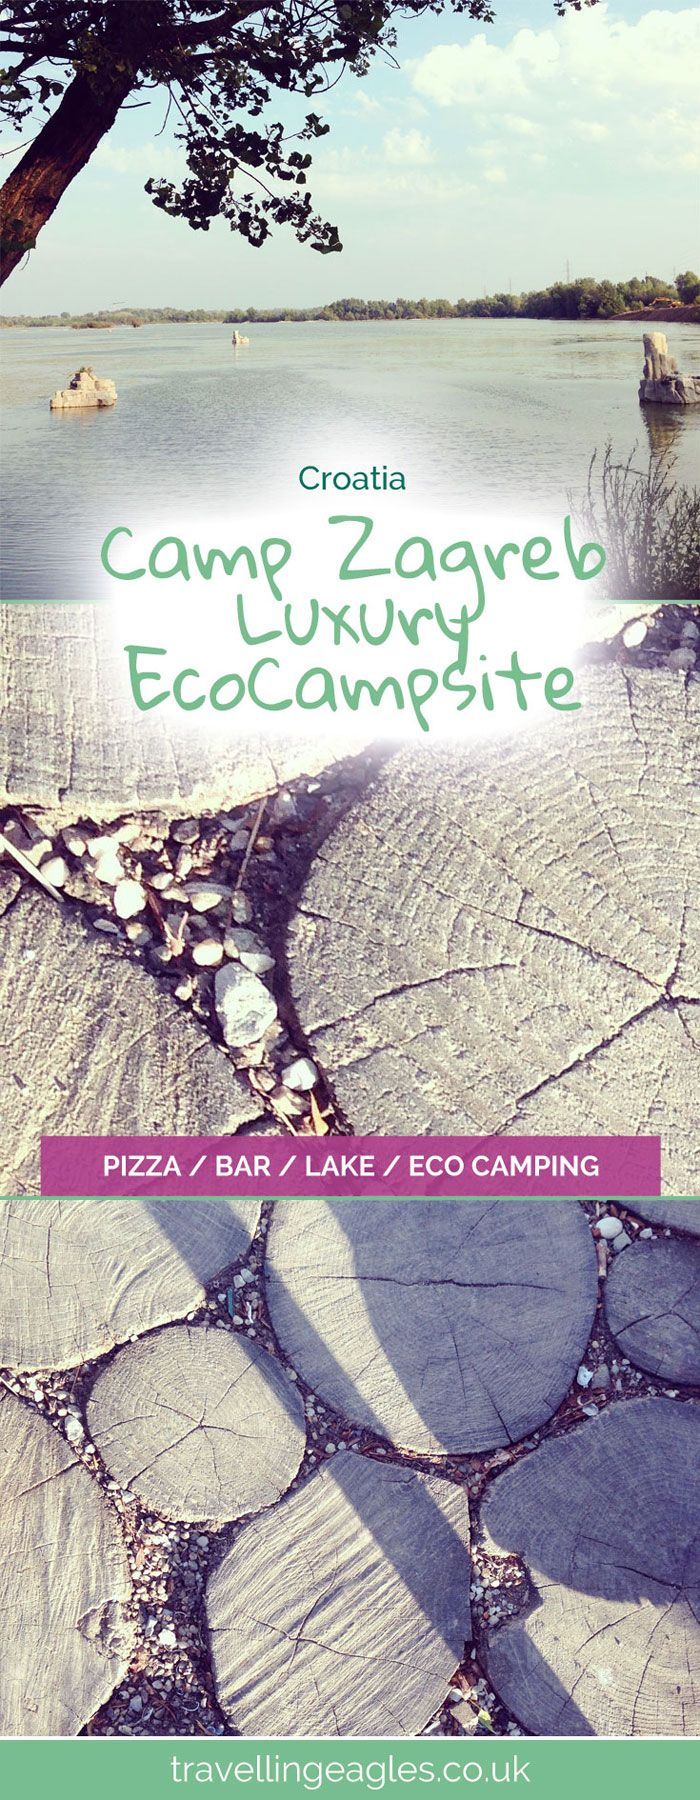 Camp Zagreb Luxury Eco Campsite - The Travelling Eagles